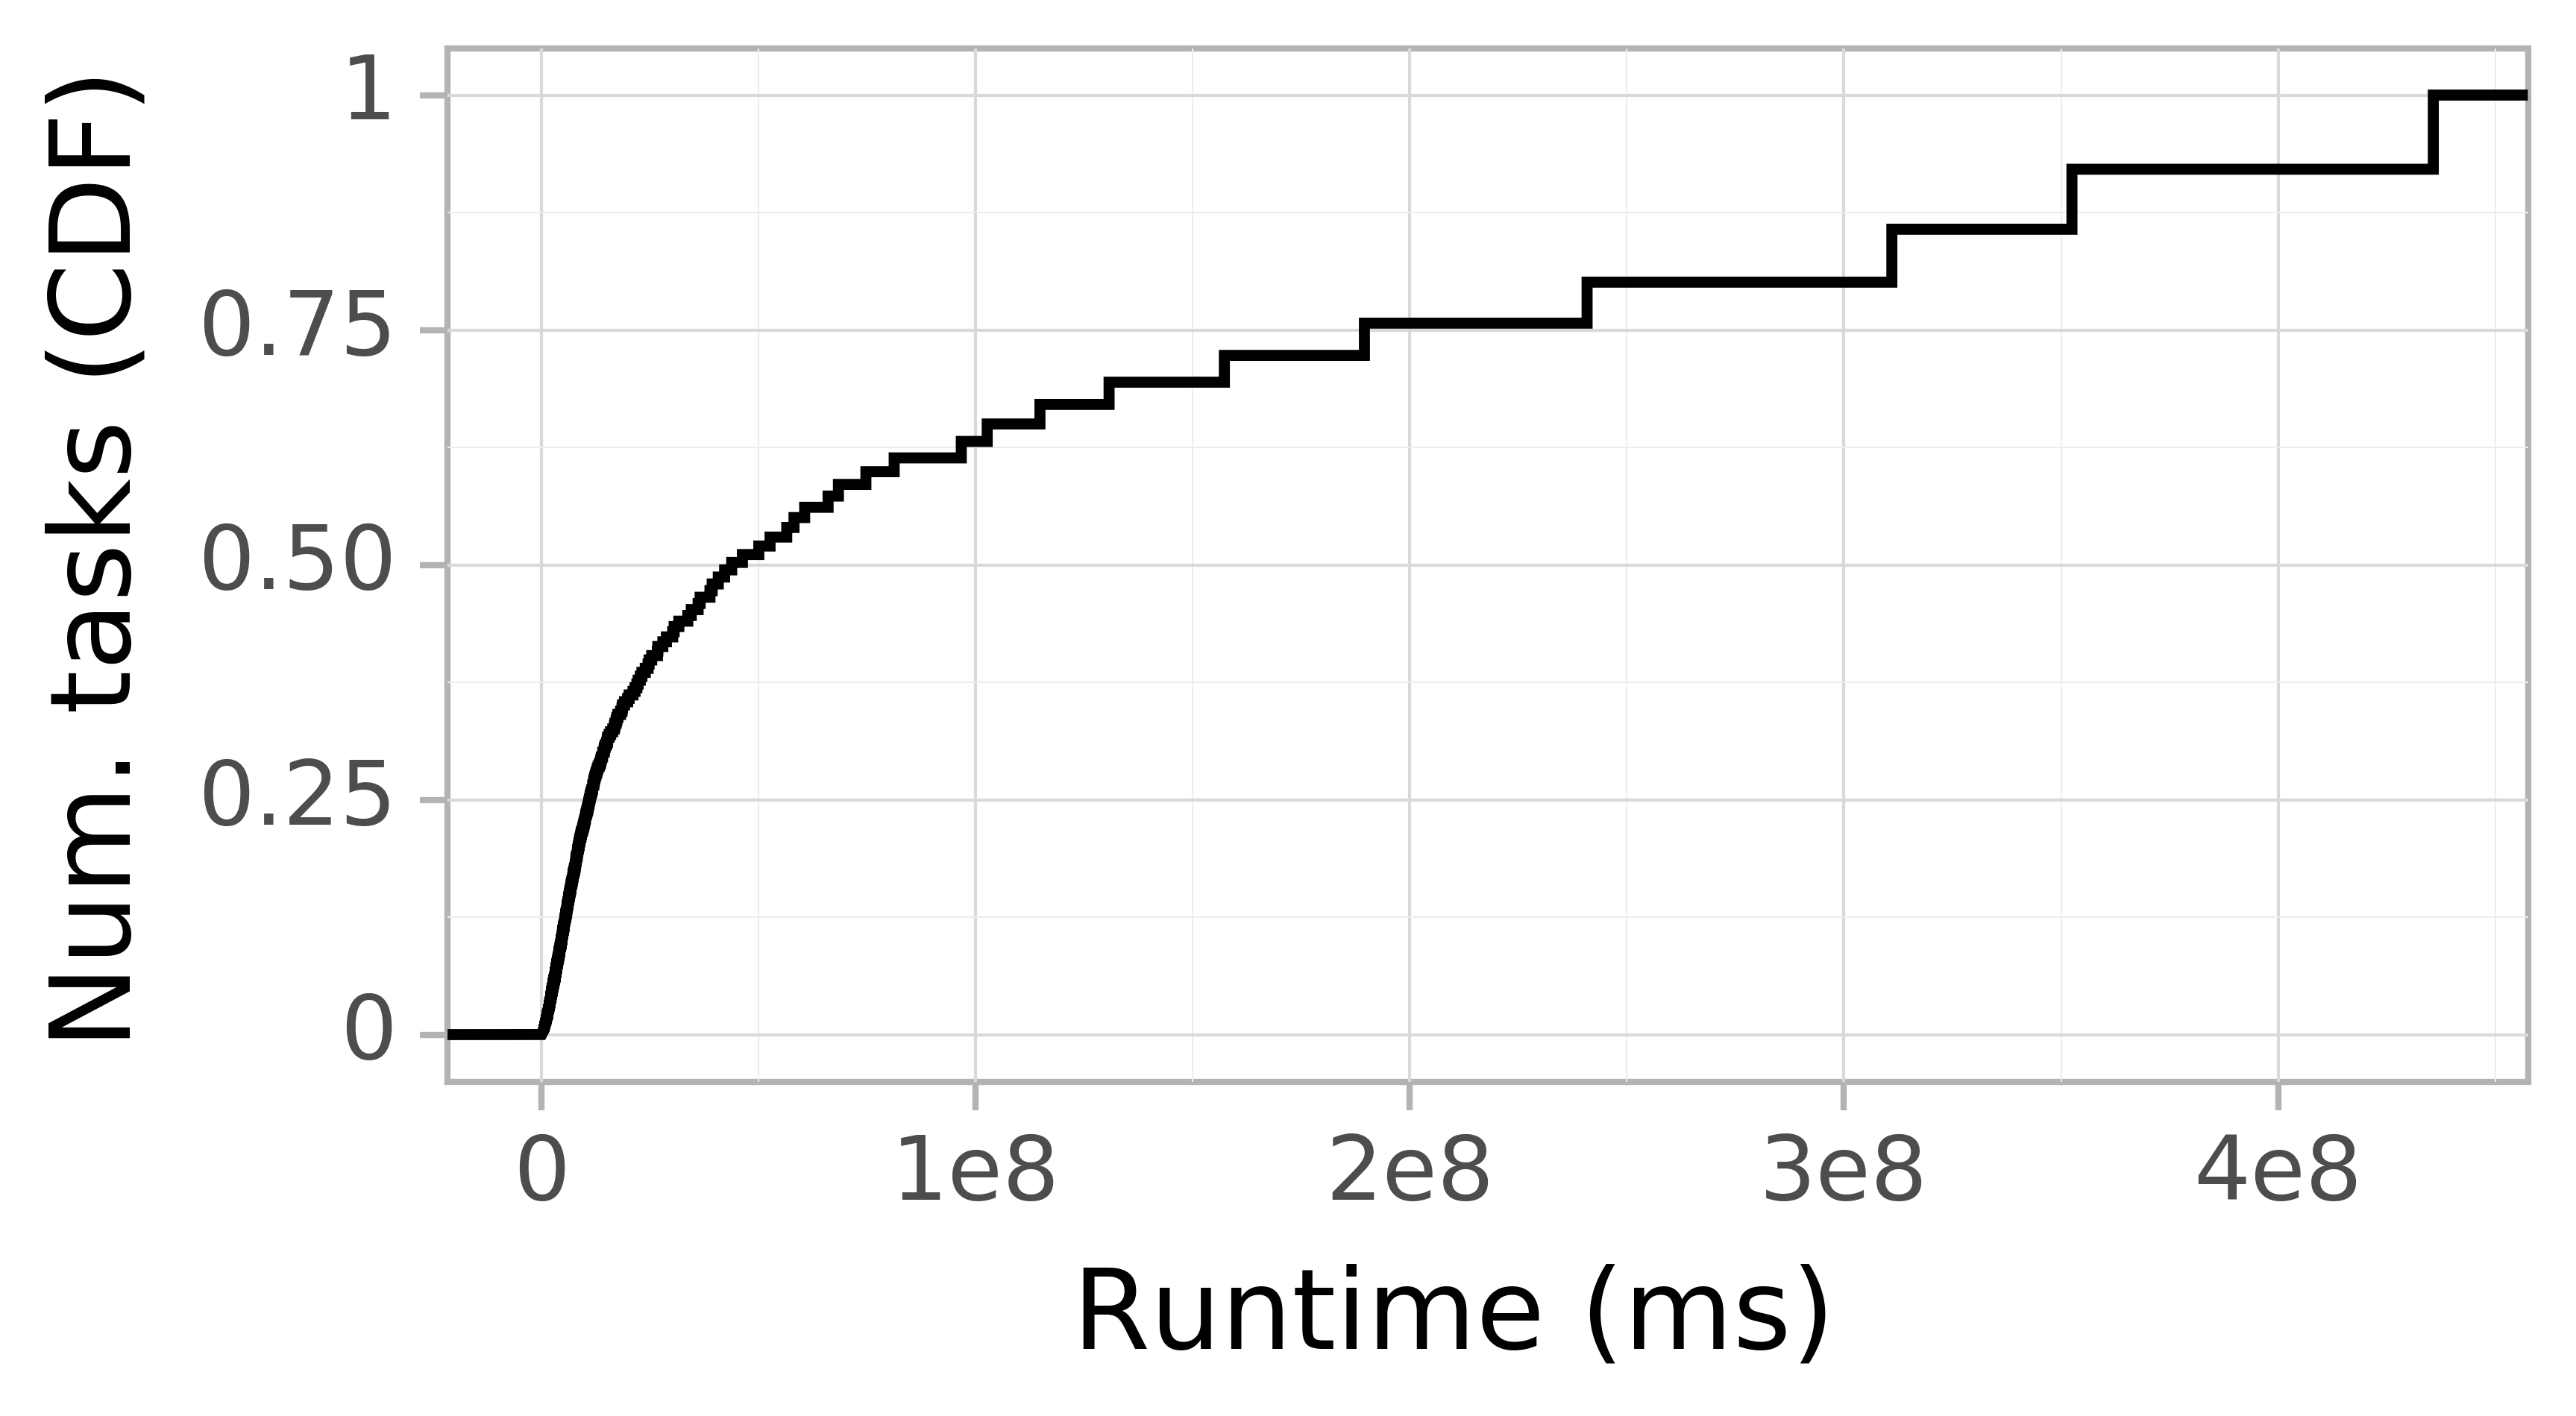 Task runtime CDF graph for the Two_Sigma_pit trace.